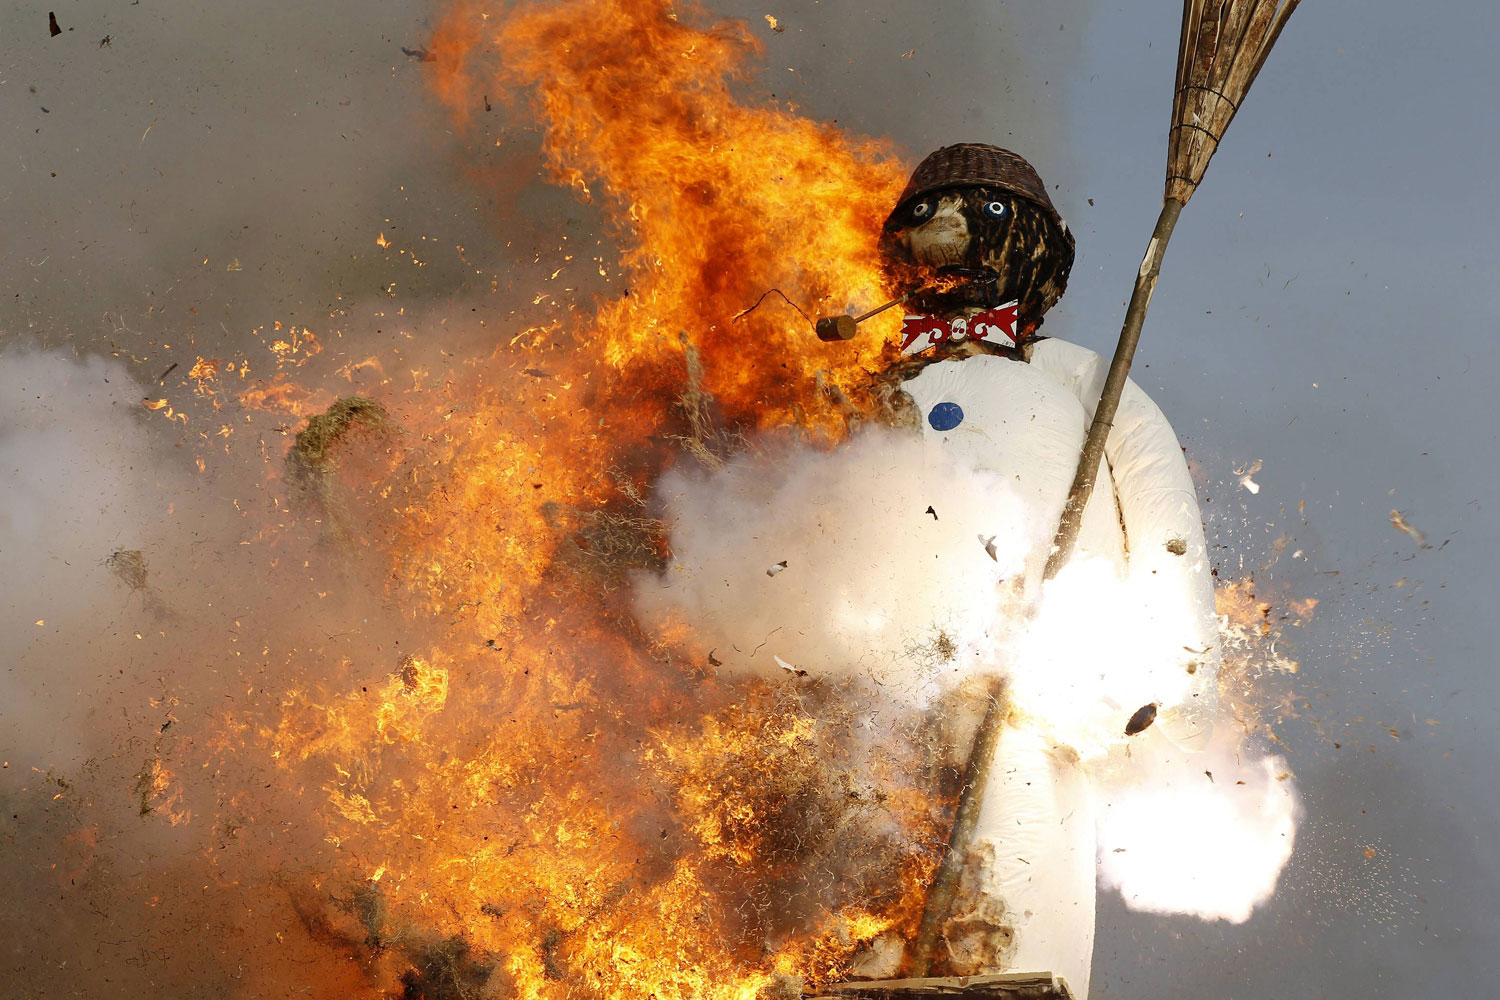 April 11, 2011. The Boeoegg, a snowman made of wadding and filled with firecrackers, explodes atop a bonfire in the Sechselaeuten square in Zurich, Switzerland. As the bells of St. Peter's church chime 6 o'clock, the bonfire below the Boeoegg, which represents winter, is set alight, and mounted guildsmen gallop around the pyre to the tune of the Sechselaeuten March. The faster it catches fire and explodes, the warmer and more beautiful the summer will be.